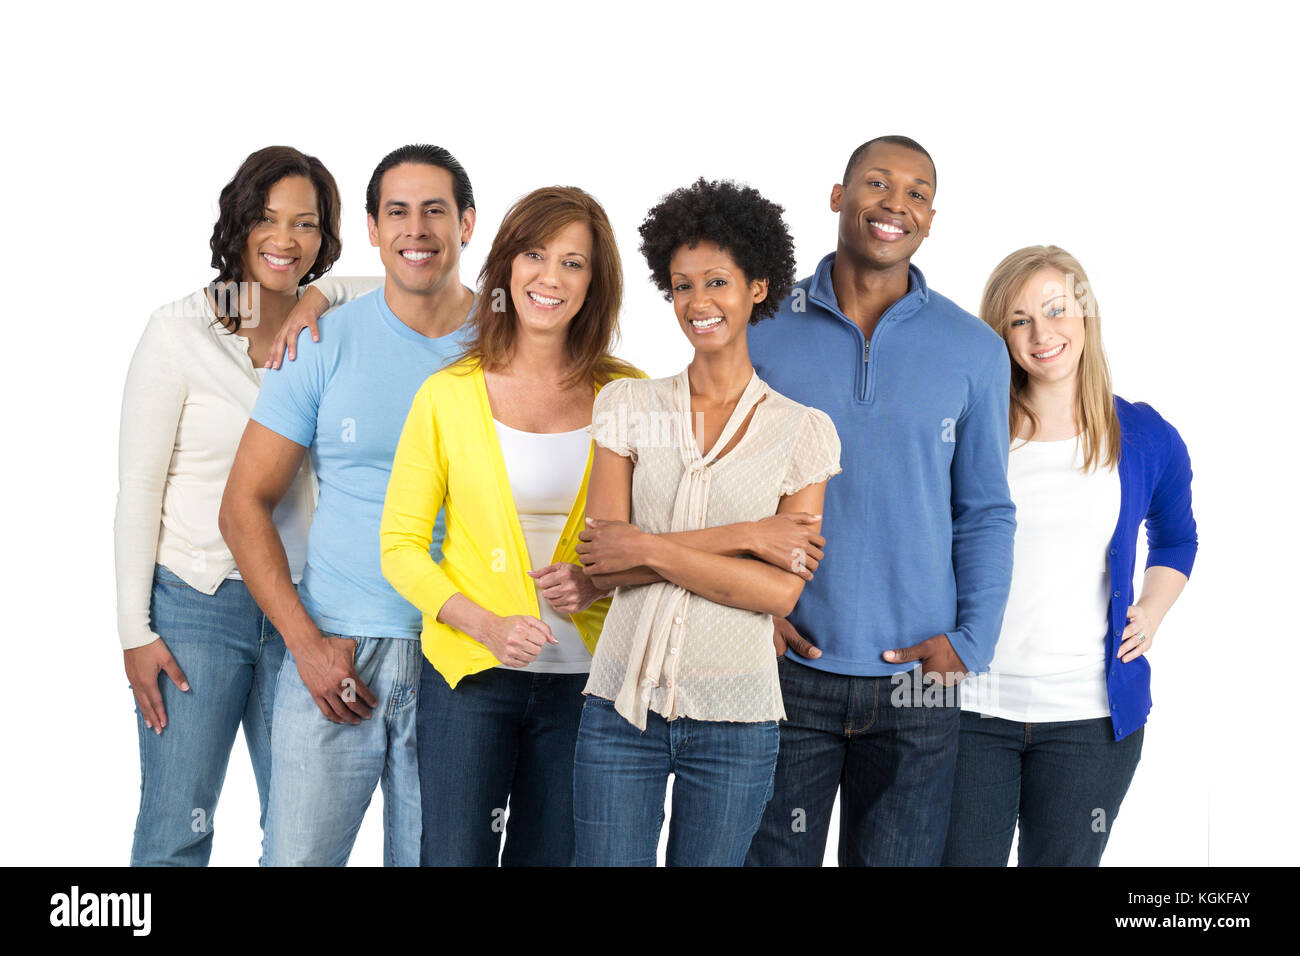 Large Family Portrait Hispanic Stock Photos & Large Family ...